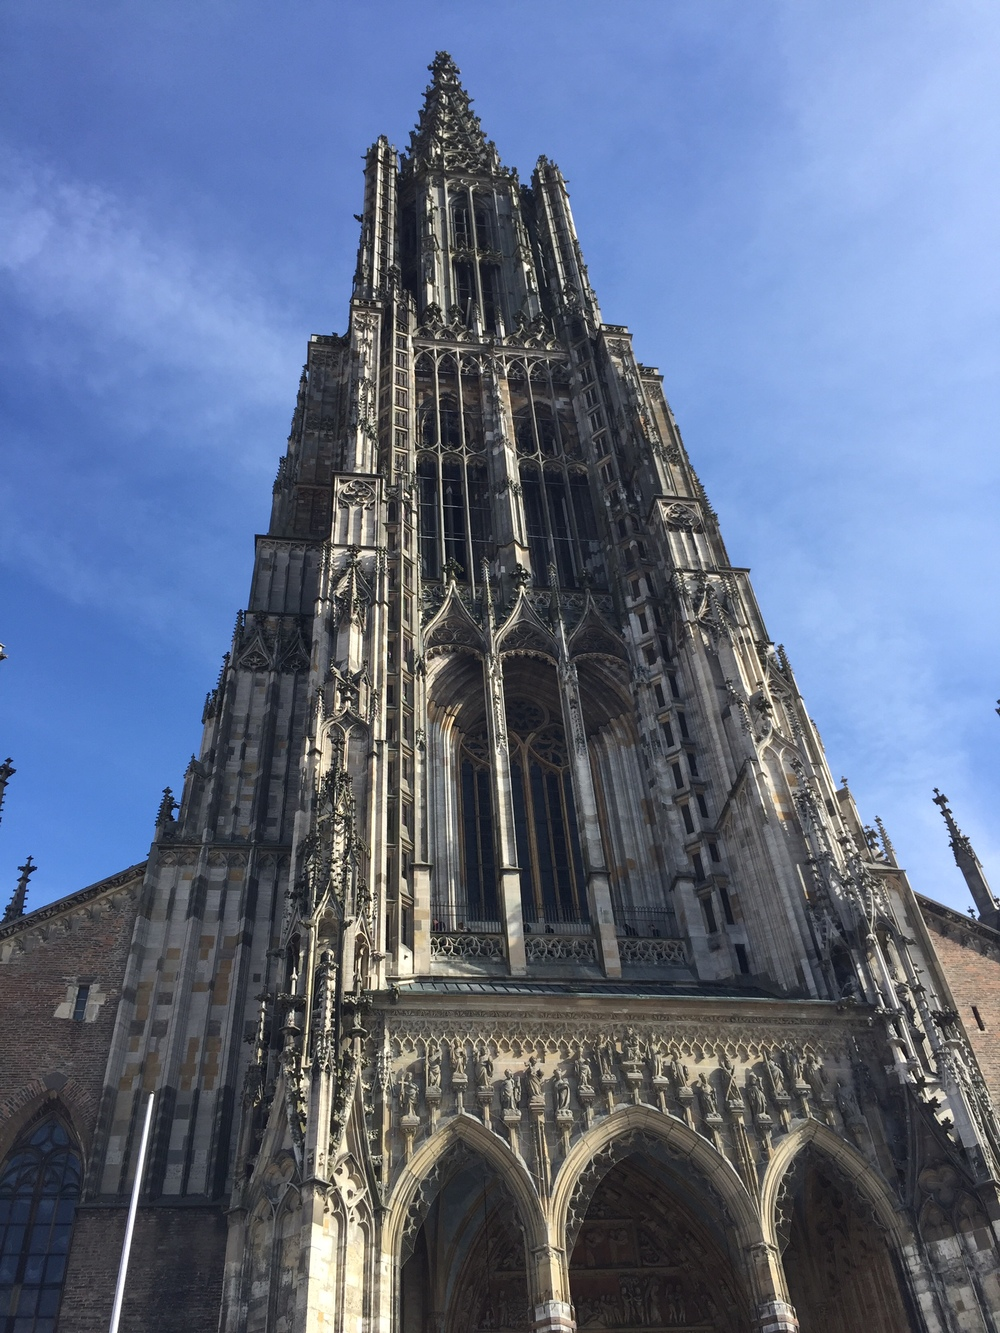 Highest Church tower in the world - Ulm